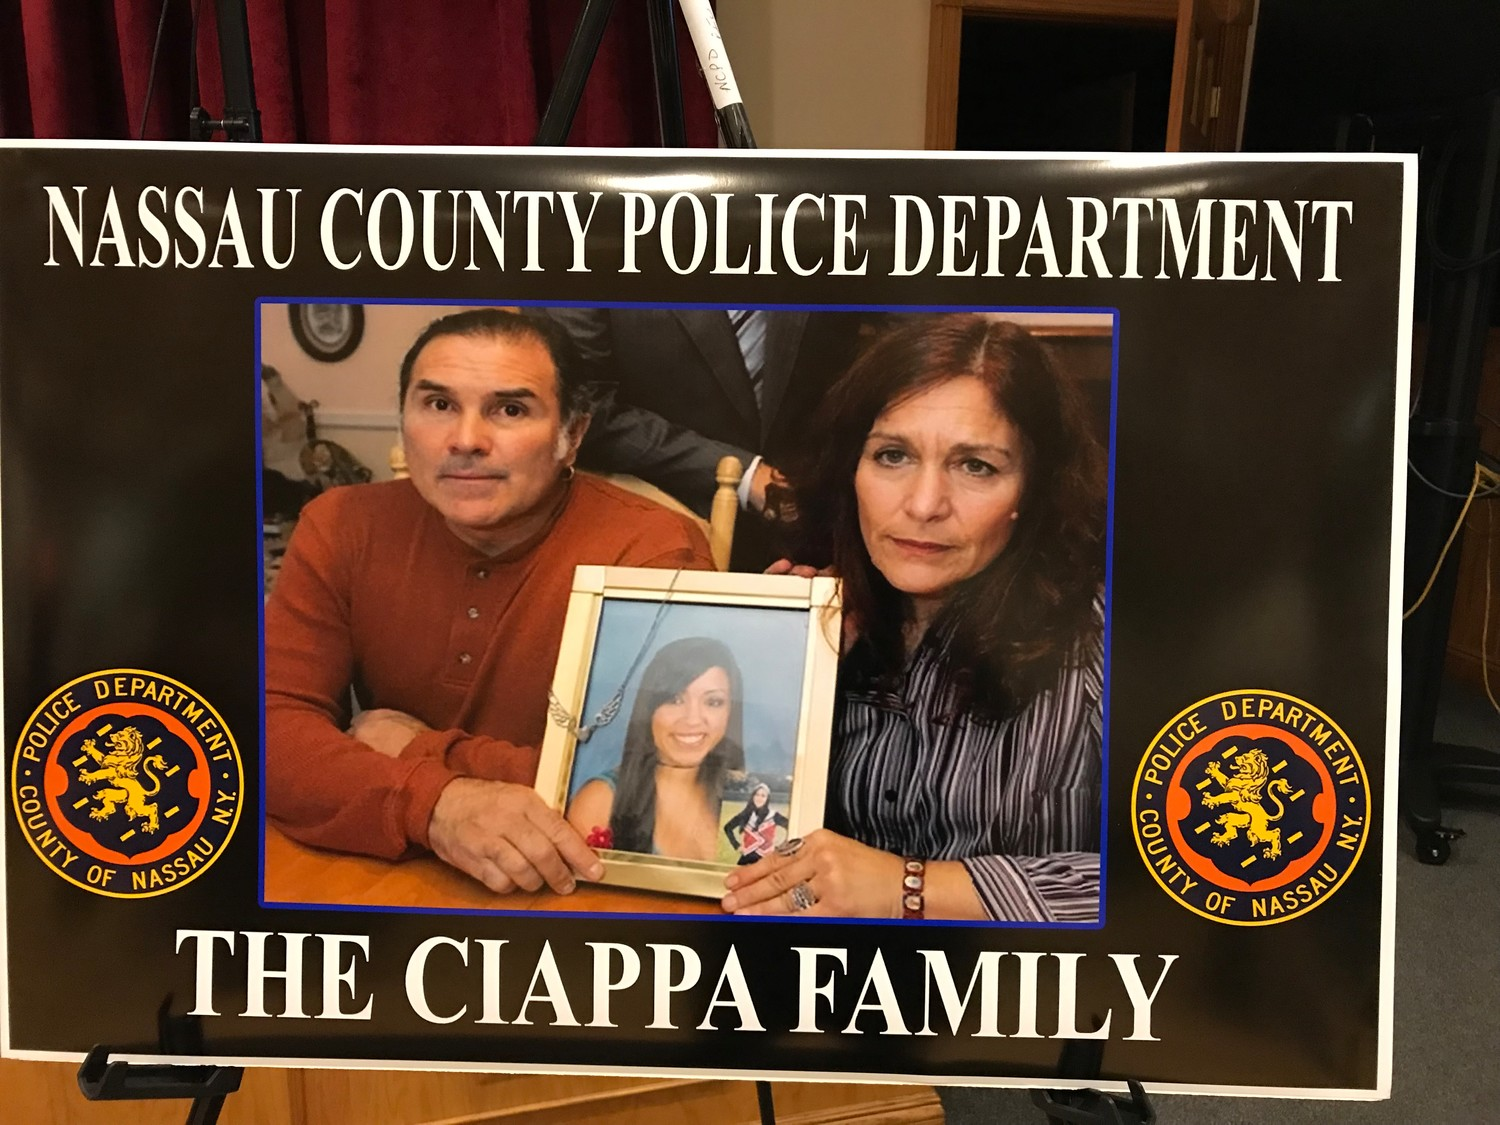 Natalie Ciappa's parents hold a photo of their teenage daughter Natalie who died from a heroin overdose at a Seaford home during a party in 2008. Today, nassau officials named their aggressive campaign against the opioid epidemic: Operation Natalie